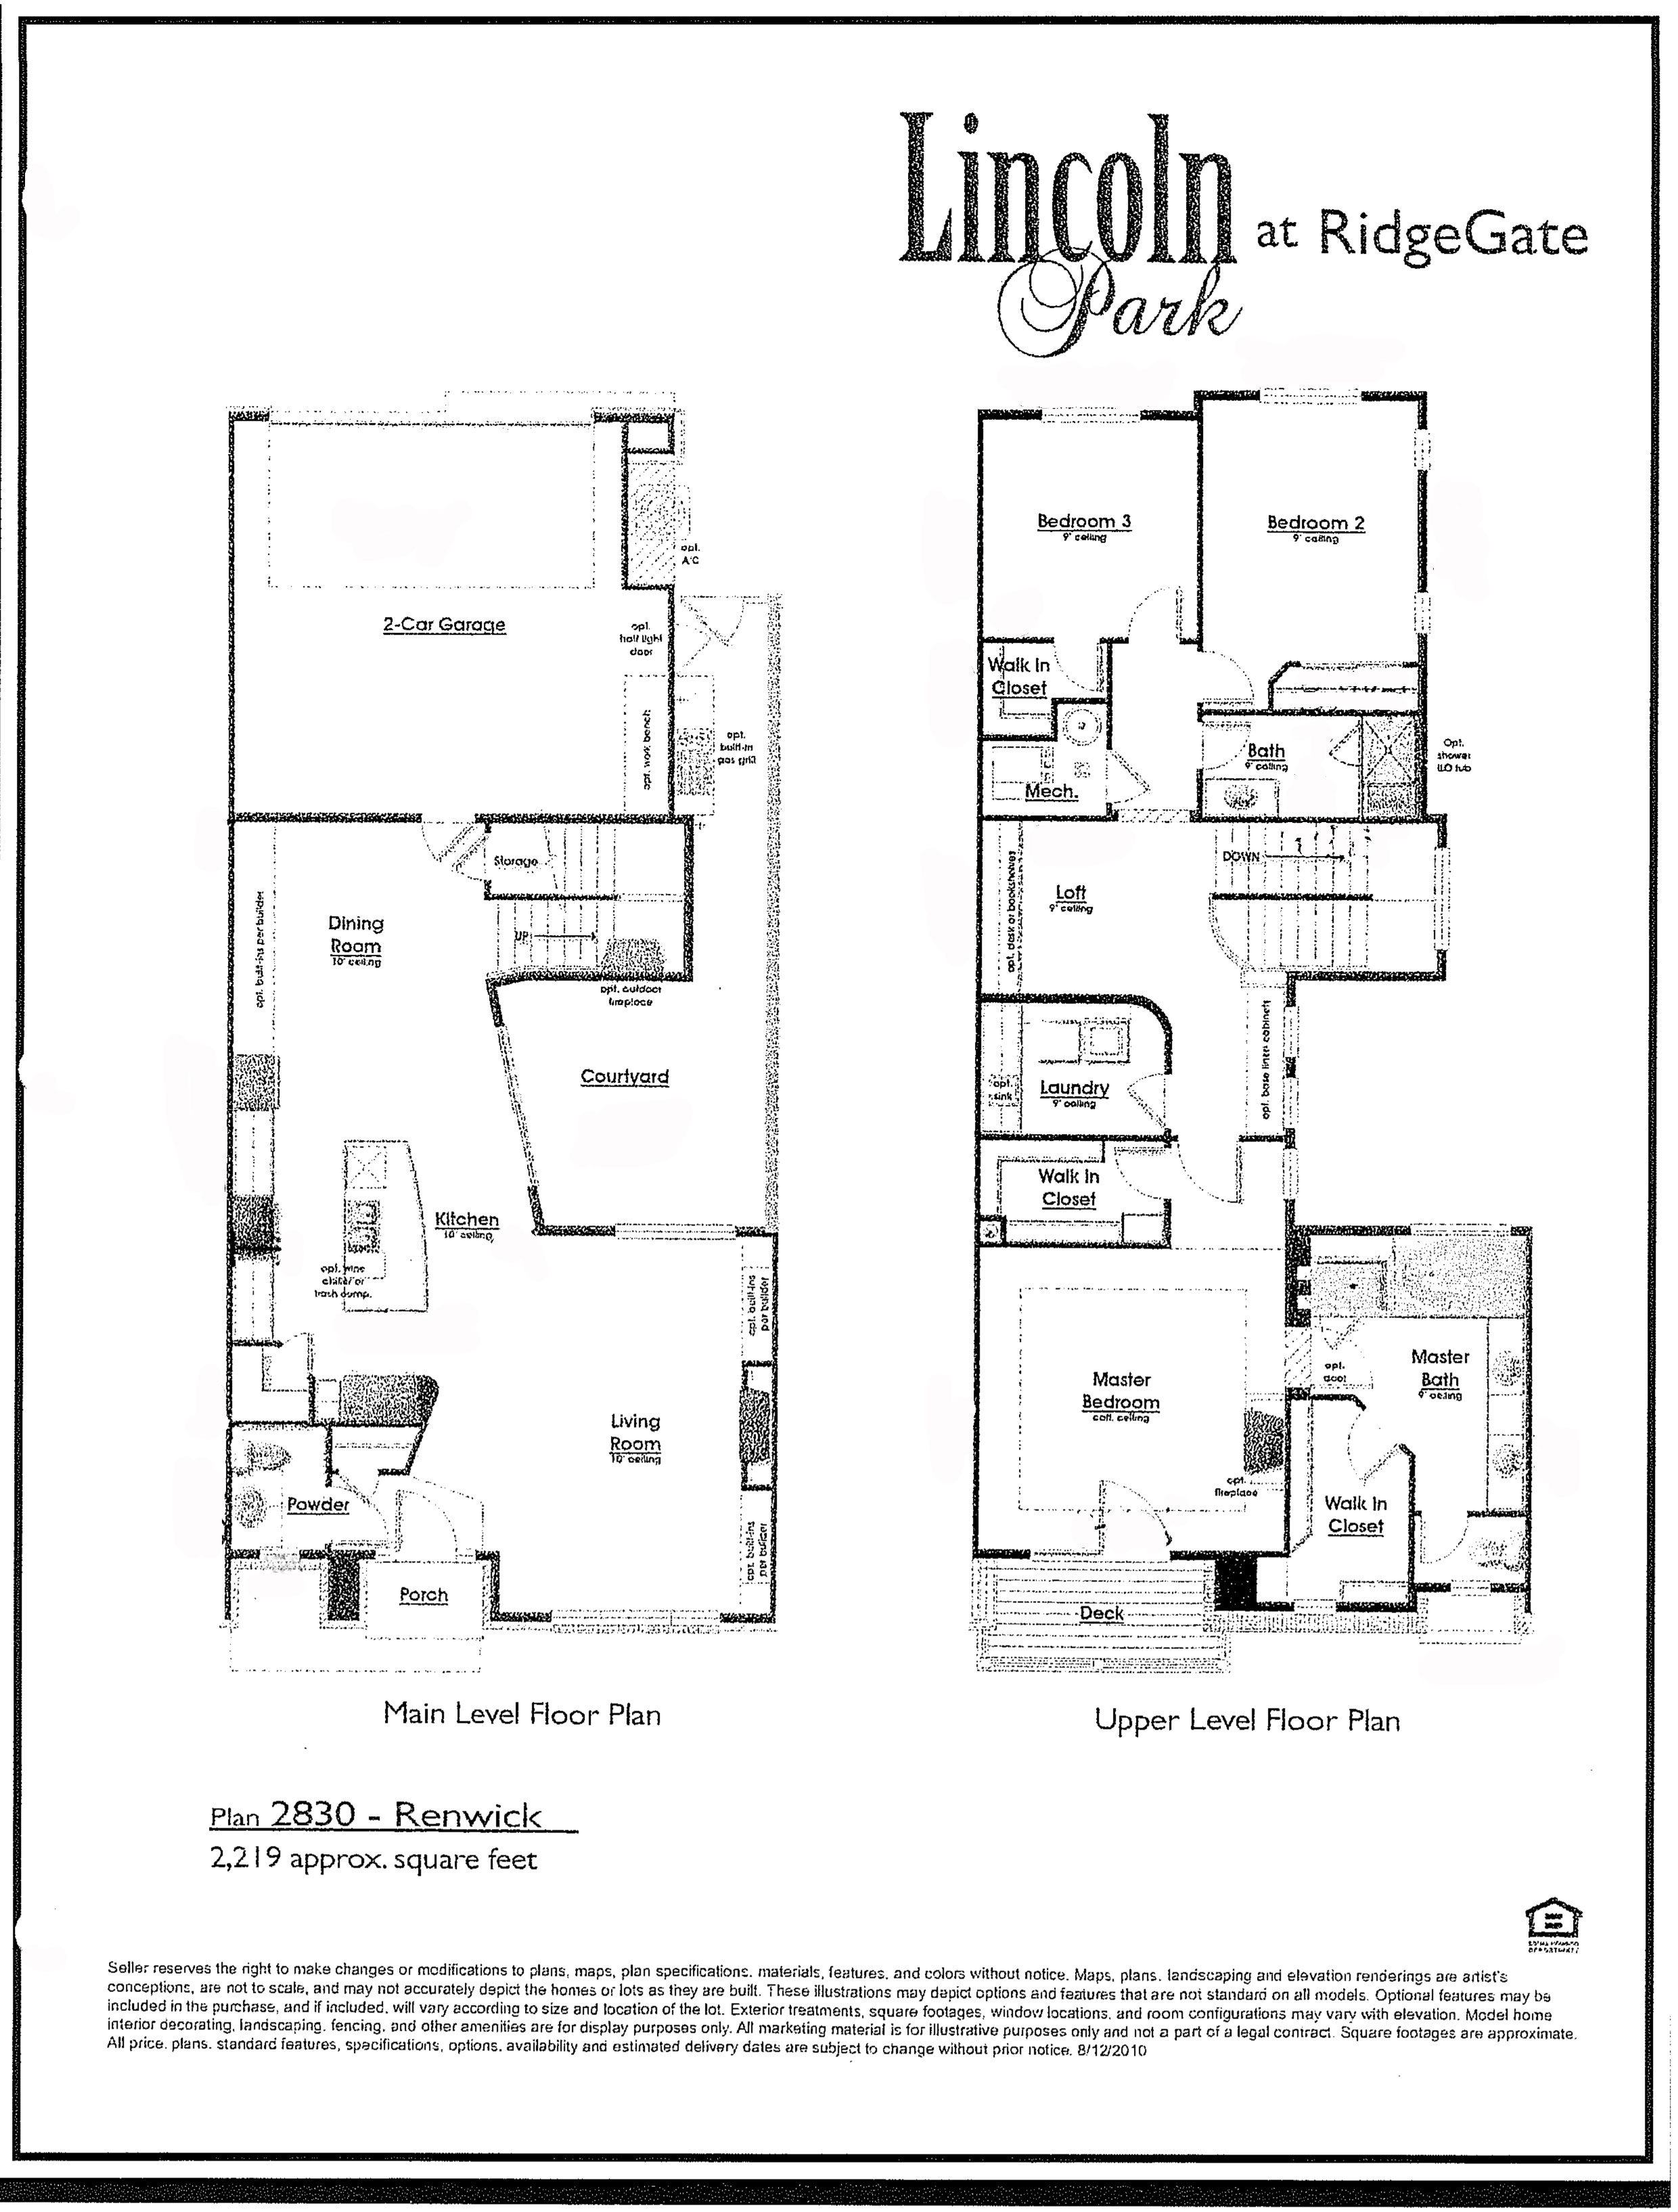 Plan 2830 Renwick at Lincoln Park in RidgeGate of Lone Tree CO